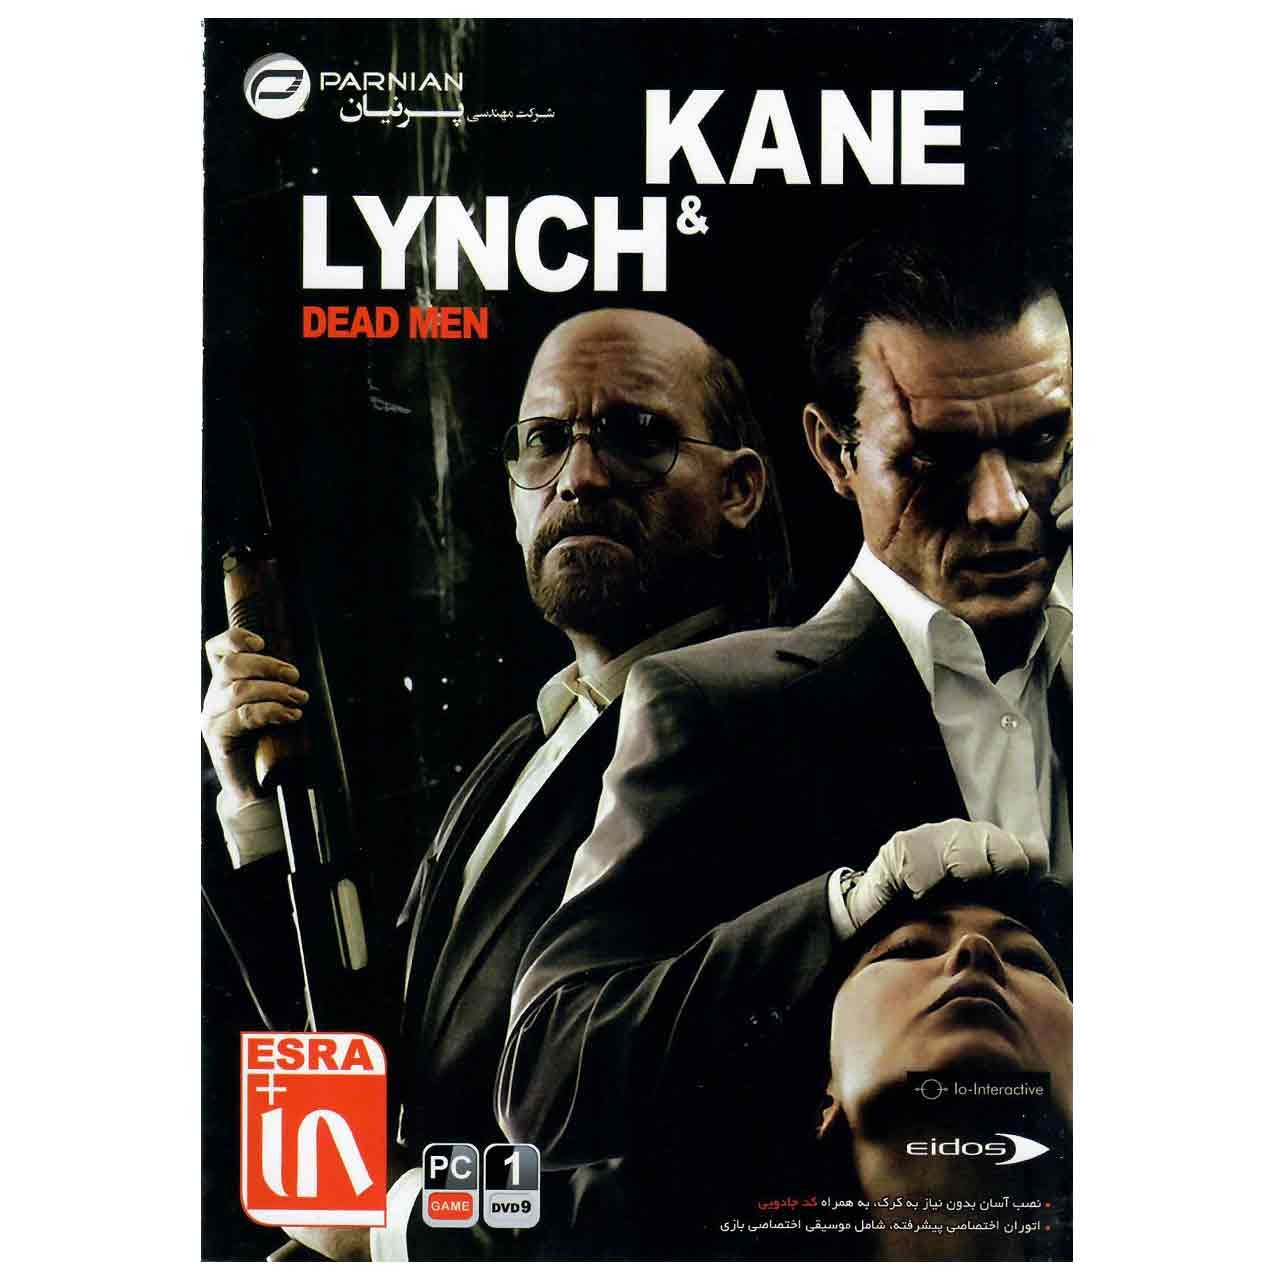 بازی Lynch And Kane Dead Men مخصوص PC